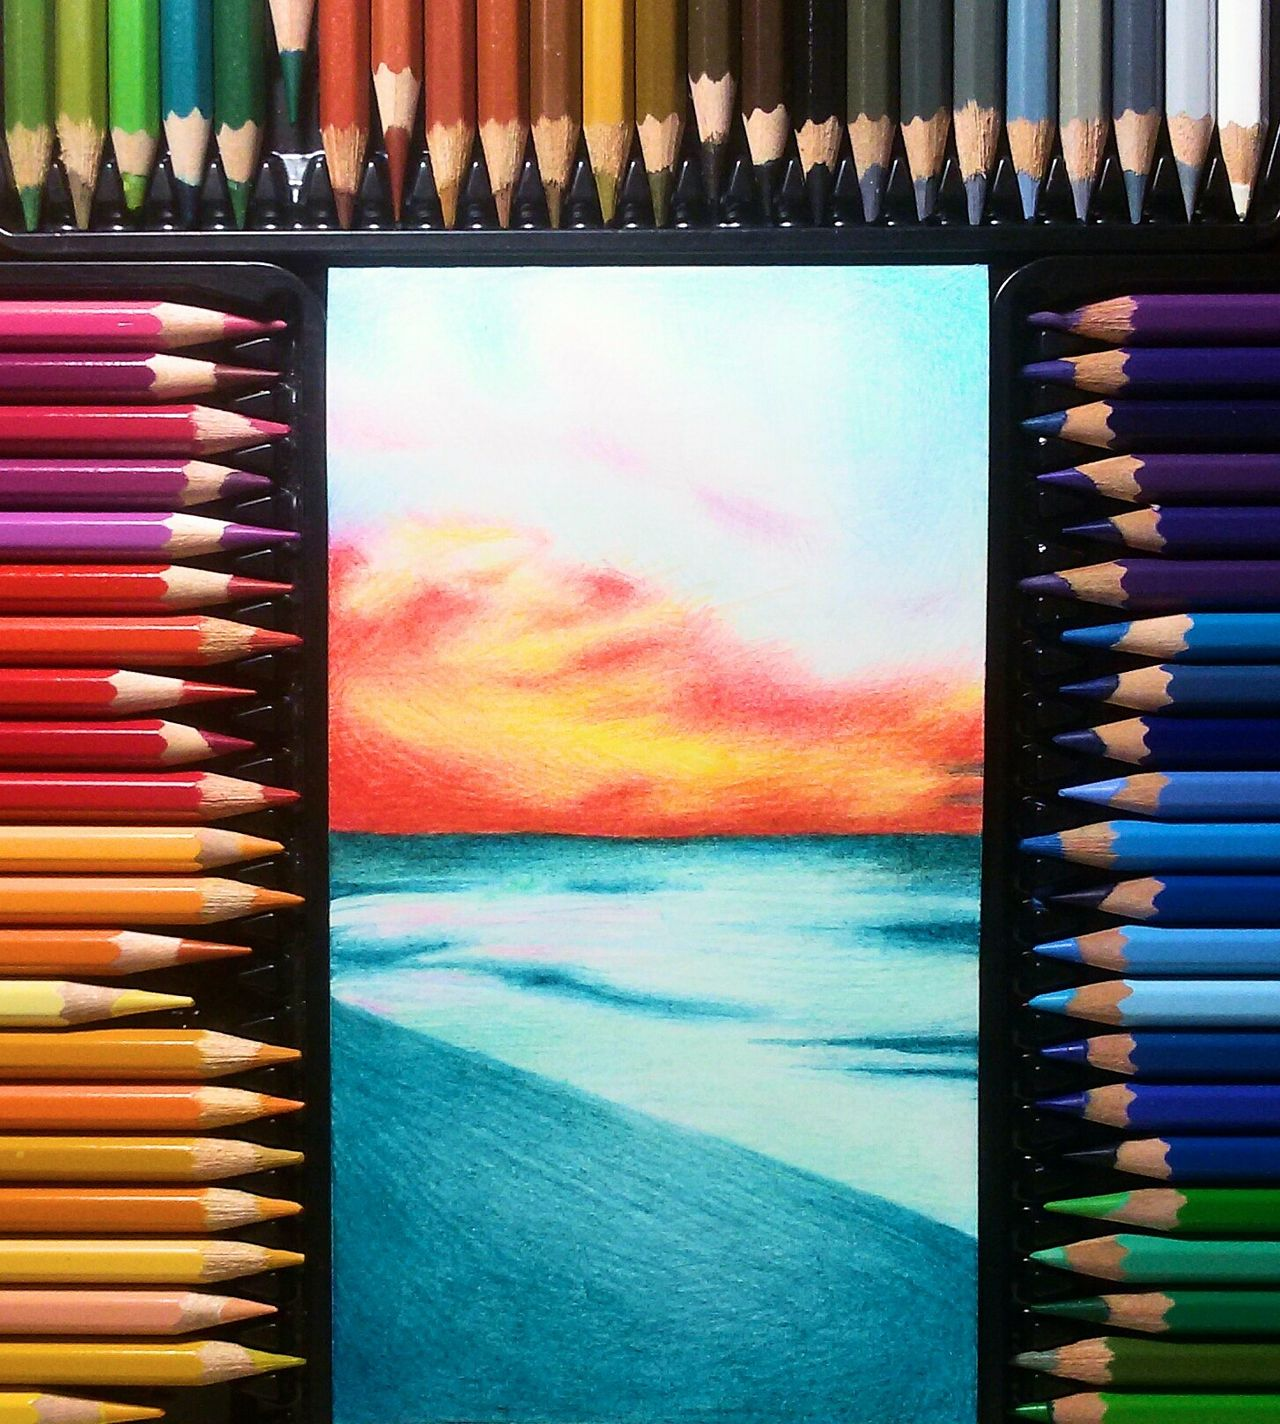 Relax. Drawing ✏ Draw Masterpiece Art And Craft ArtWork Artworkoftheday Indoors  No People Colored Pencil Kohinoor Prismacolor Floweer Art Tomsk Artoftheday EyeEm Best Shots - Nature Sky EyeEm Best Shots - Sunsets + Sunrise Tranquil SceneEyeEmBestPics D5100 Landscape Cloud - Sky Photooftheday Sunset